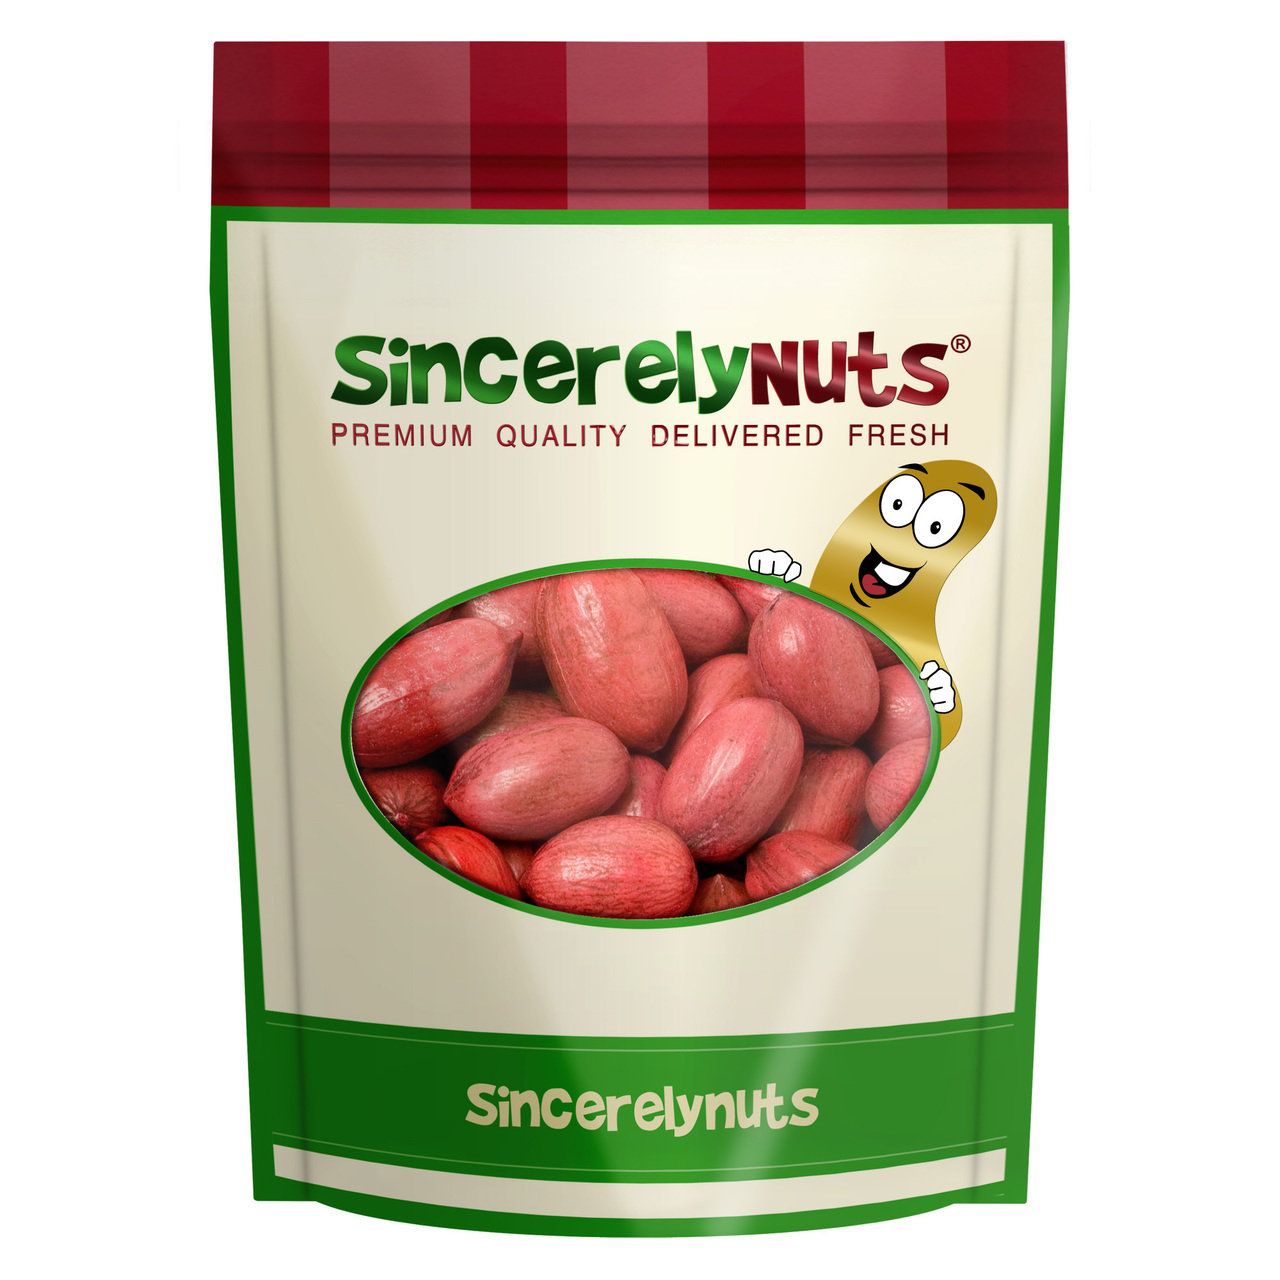 Sincerely Nuts Raw Pecans in Shell, 1 LB Bag